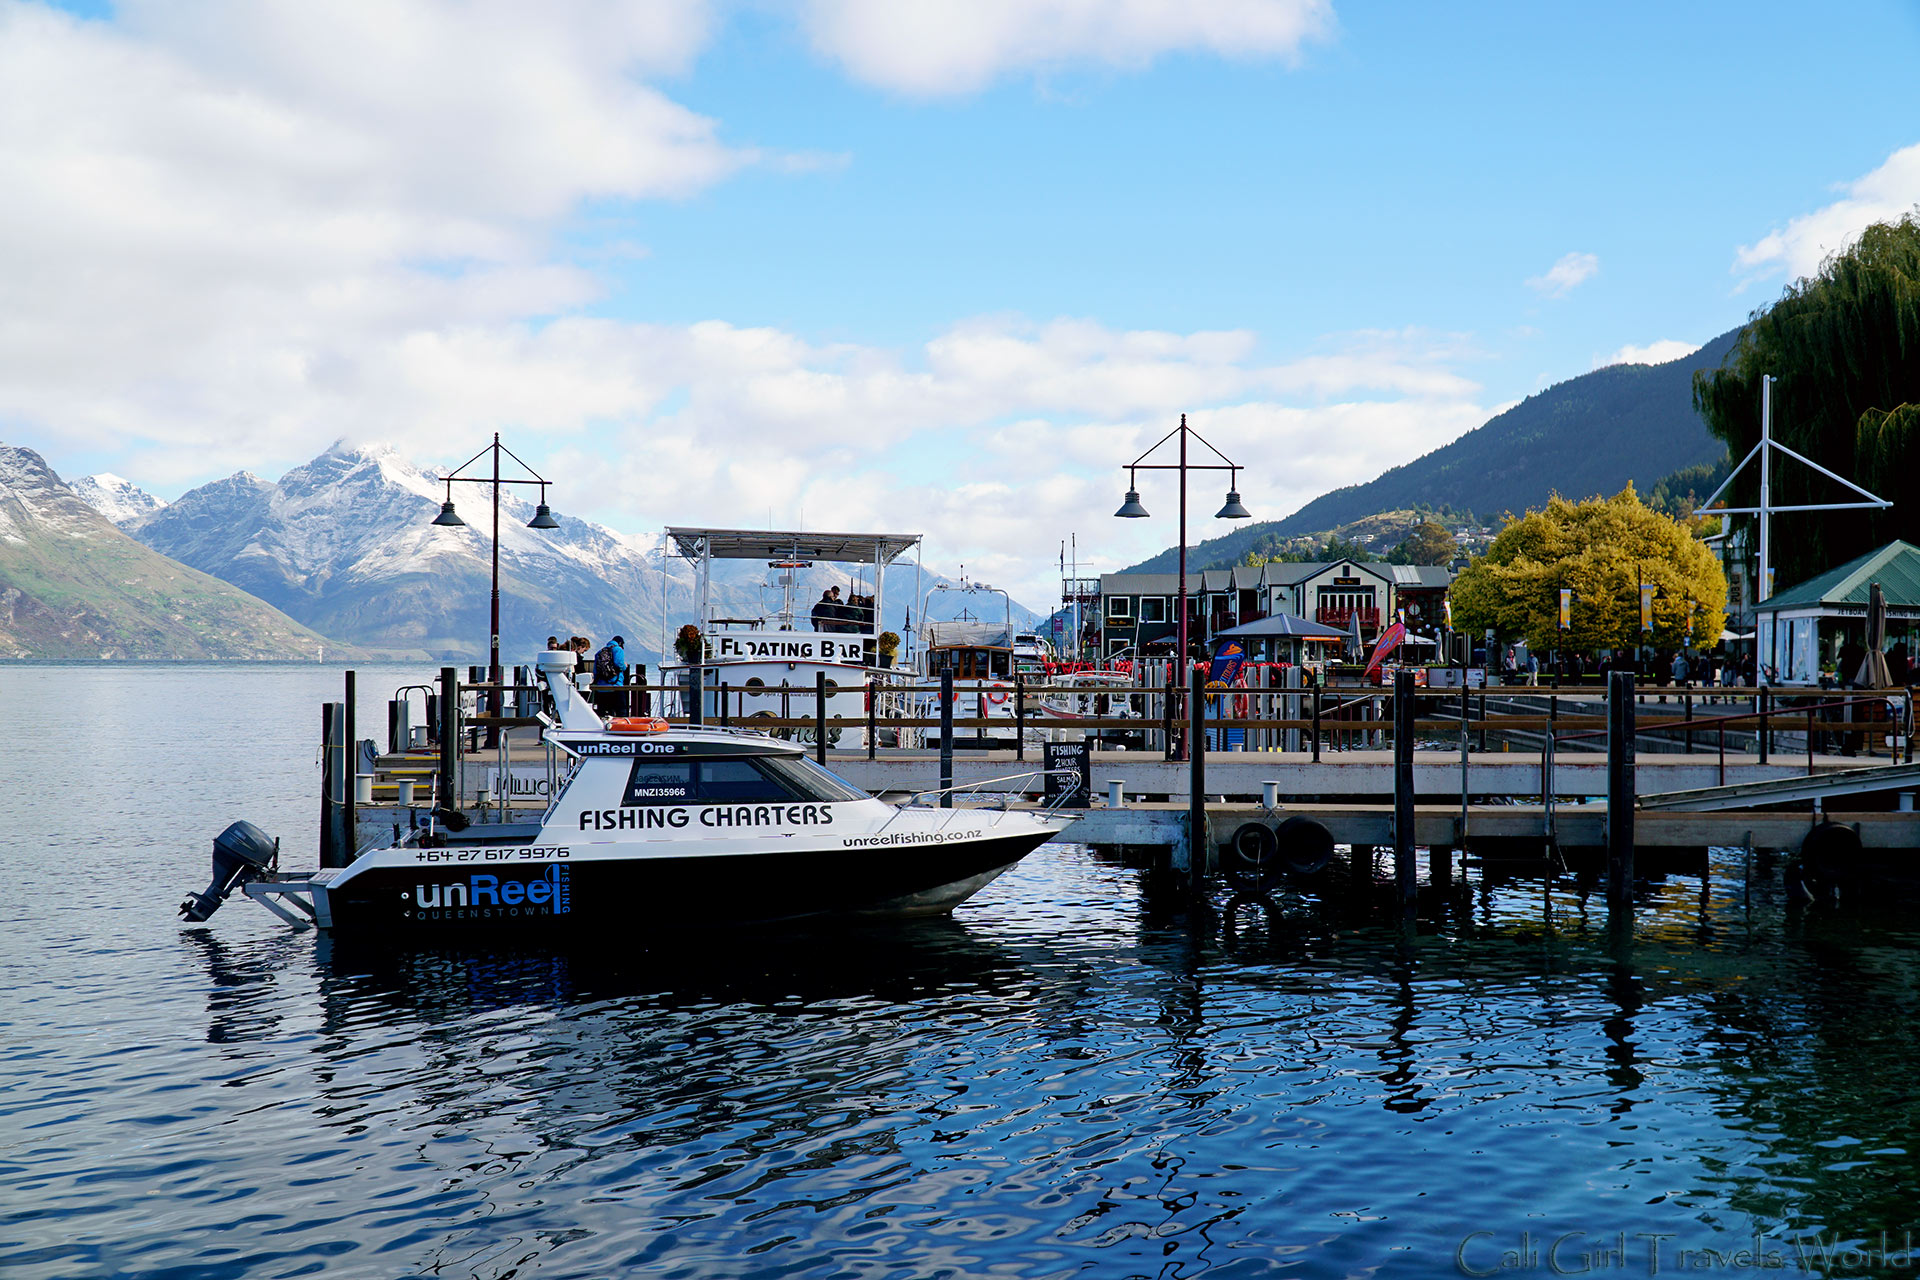 Looking out to downtown Queenstown waterfront, with boats and snow-capped mountains in the background in South Island, New Zealand.